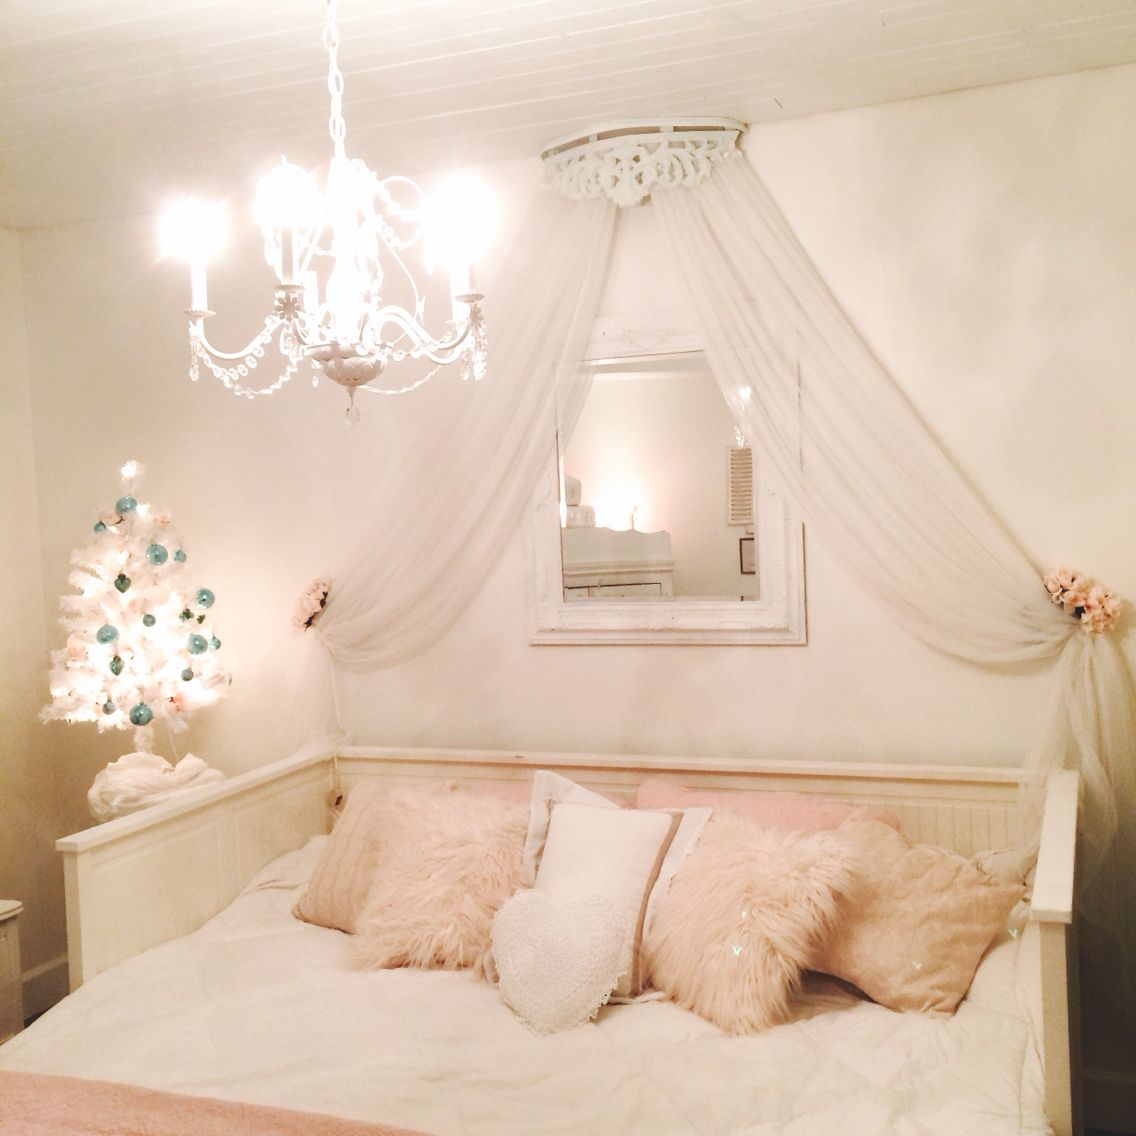 20 Bedroom Chandelier Designs Decorating Ideas: White Wood Ceiling, IKEA Hack, Day Bed, Crown, Chalk Paint